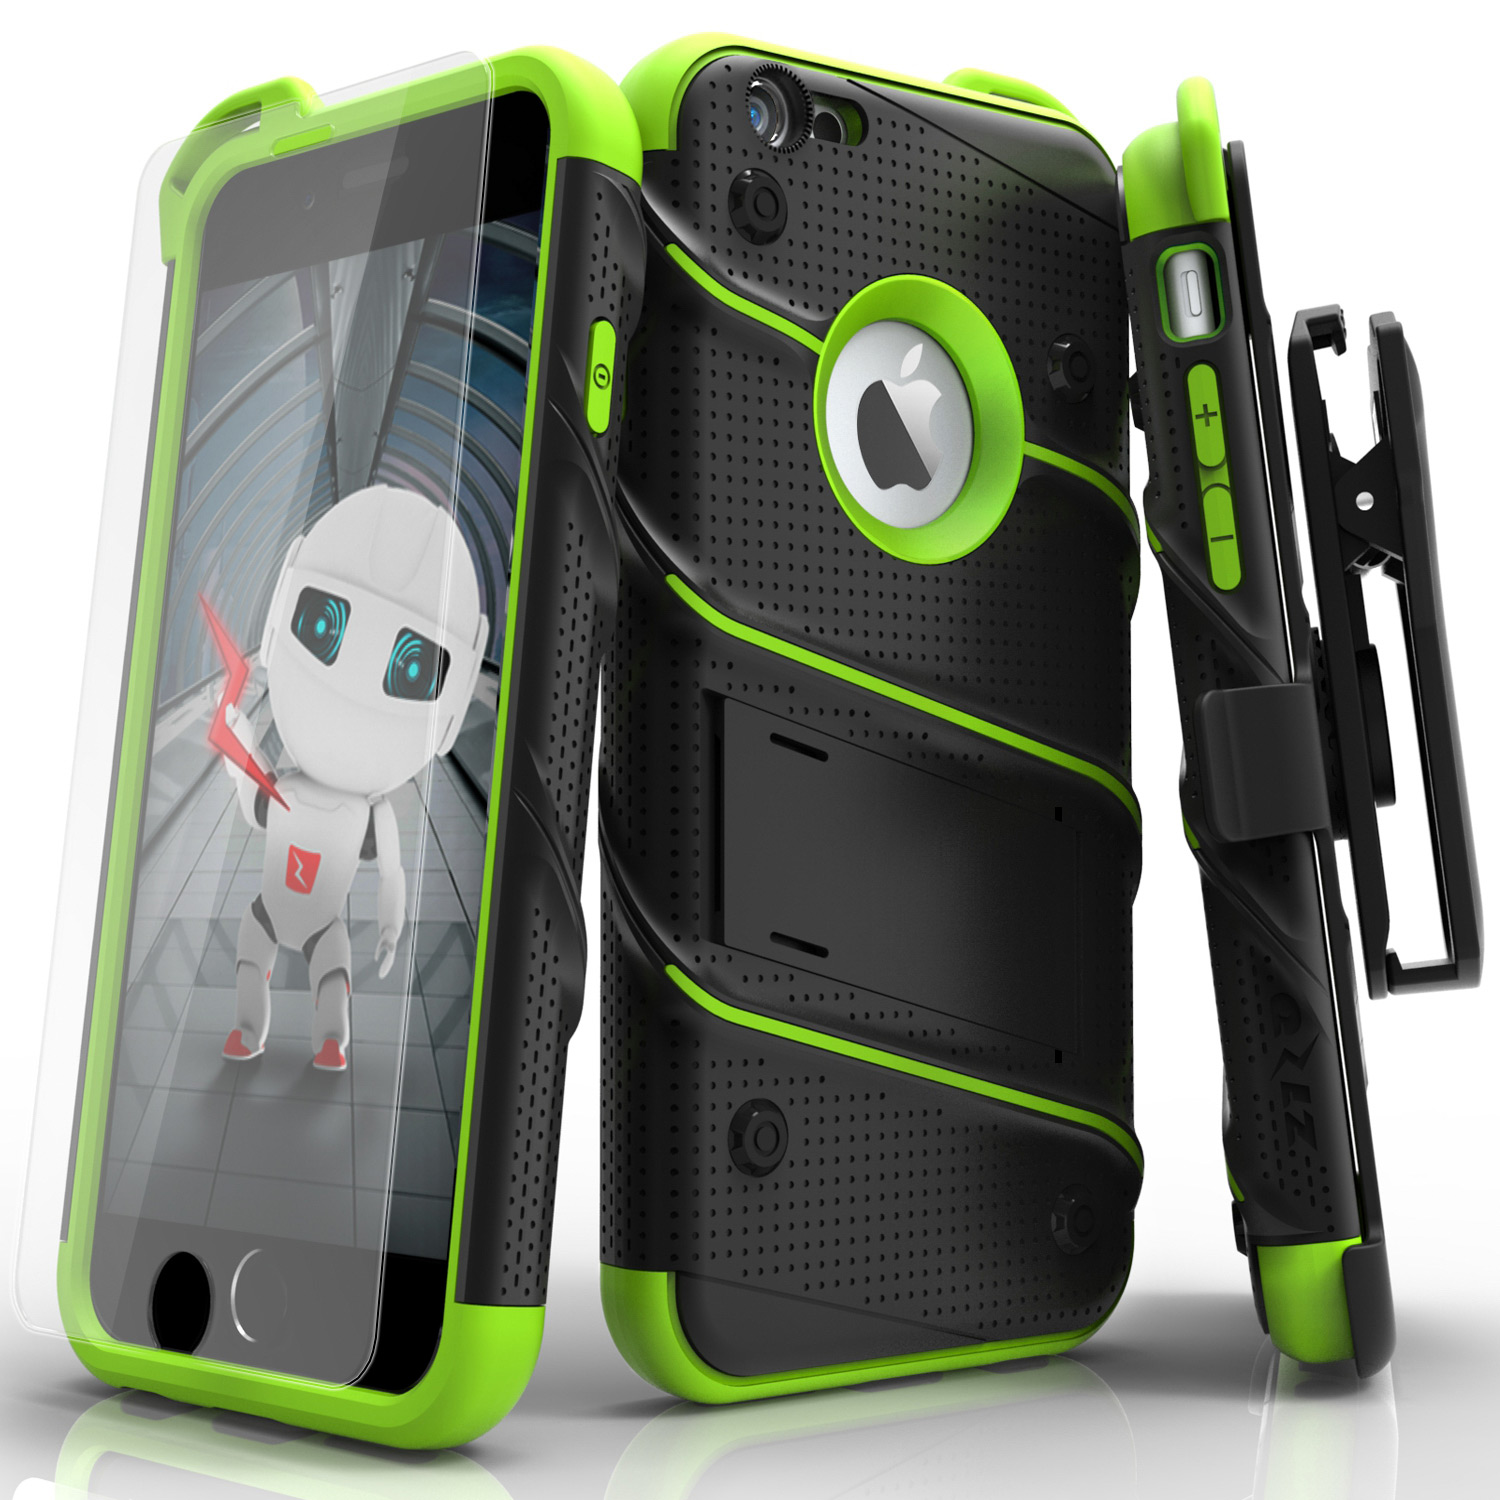 Iphone 6s Case Zizo Bolt Series With Free Iphone 6s Screen